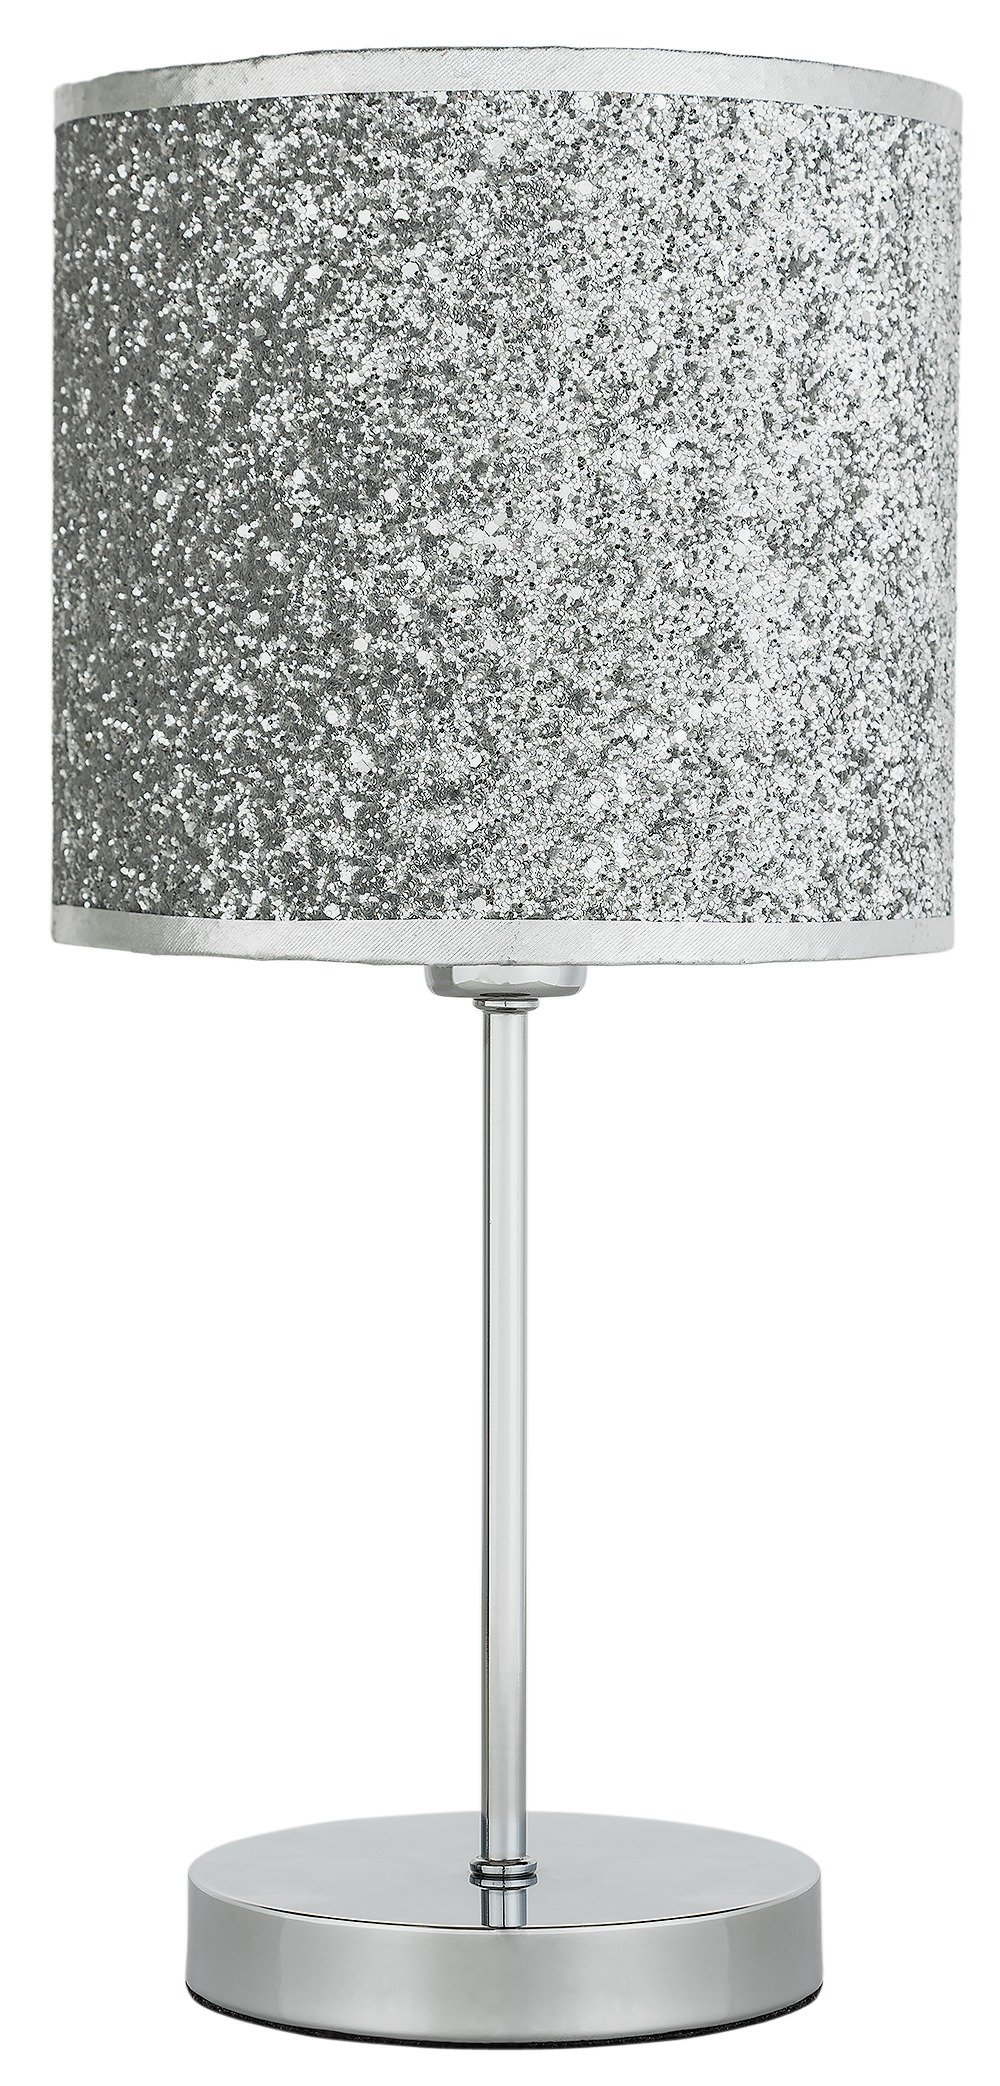 Image of HOME - Sparkling - Table Lamp - Silver